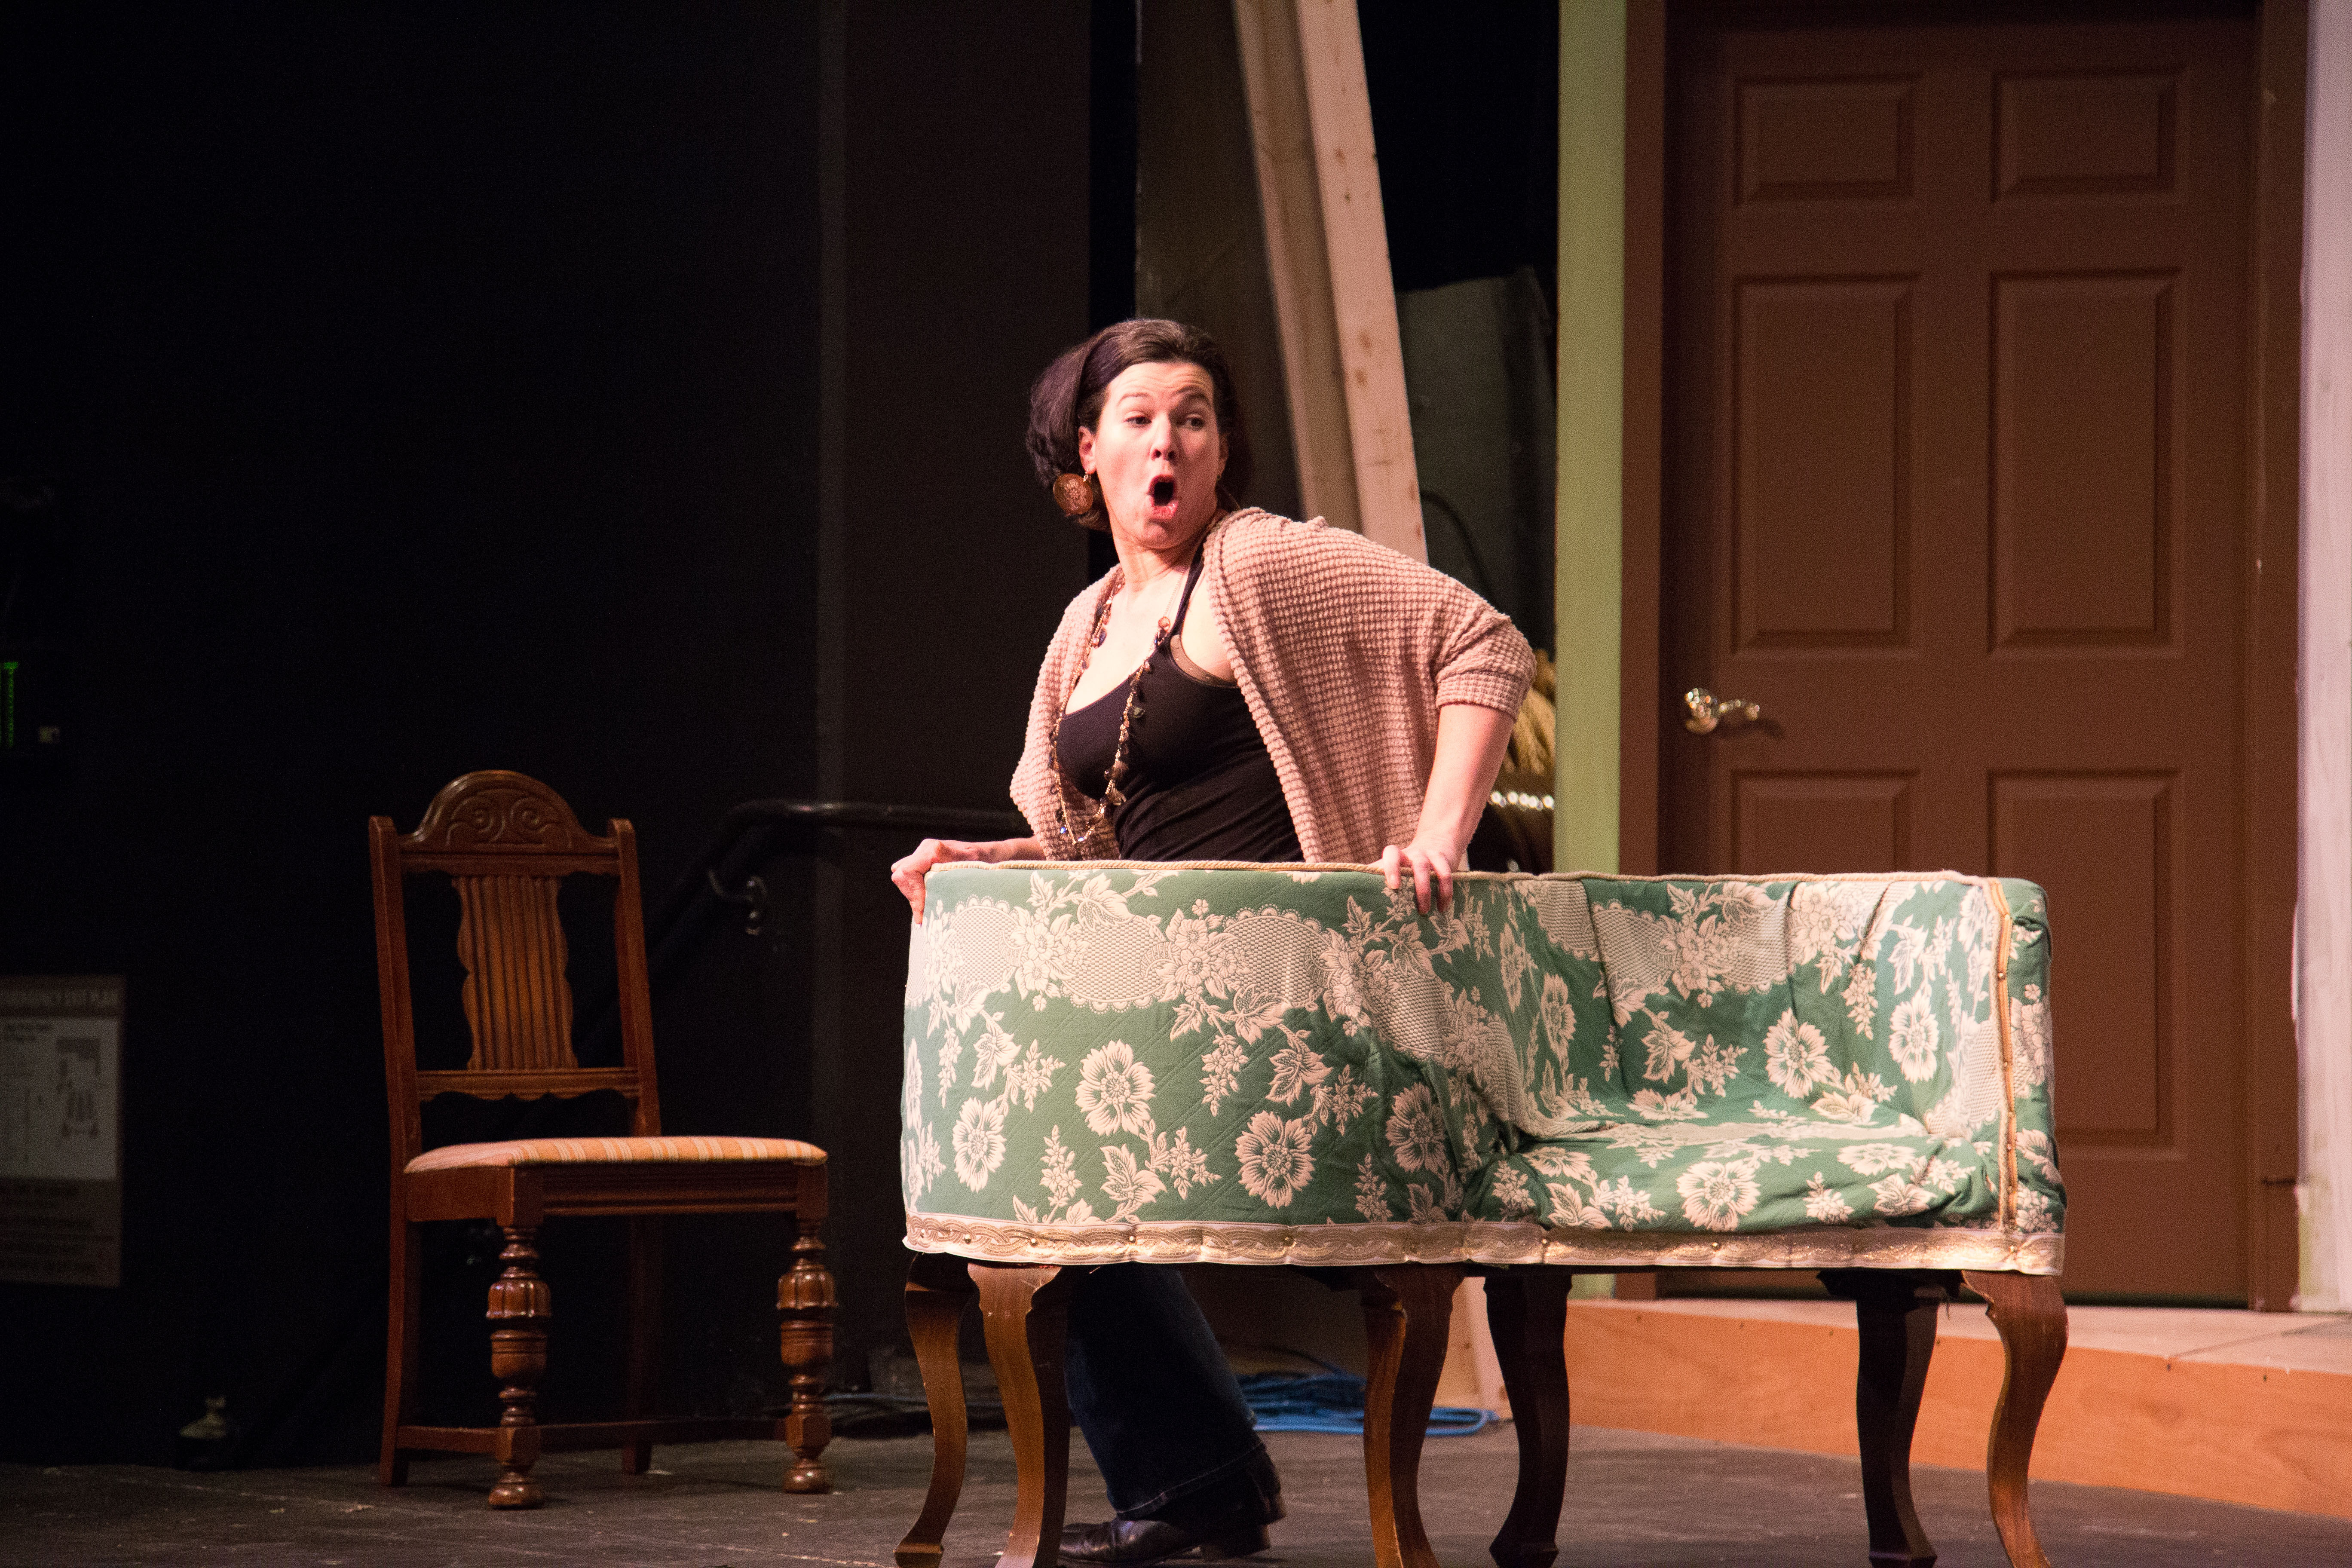 """Cast member Genevieve Perdue rehearsing as her character, """"Raymonde"""", dur- ing a dress rehearsal for """"A Flea in Her Ear."""""""